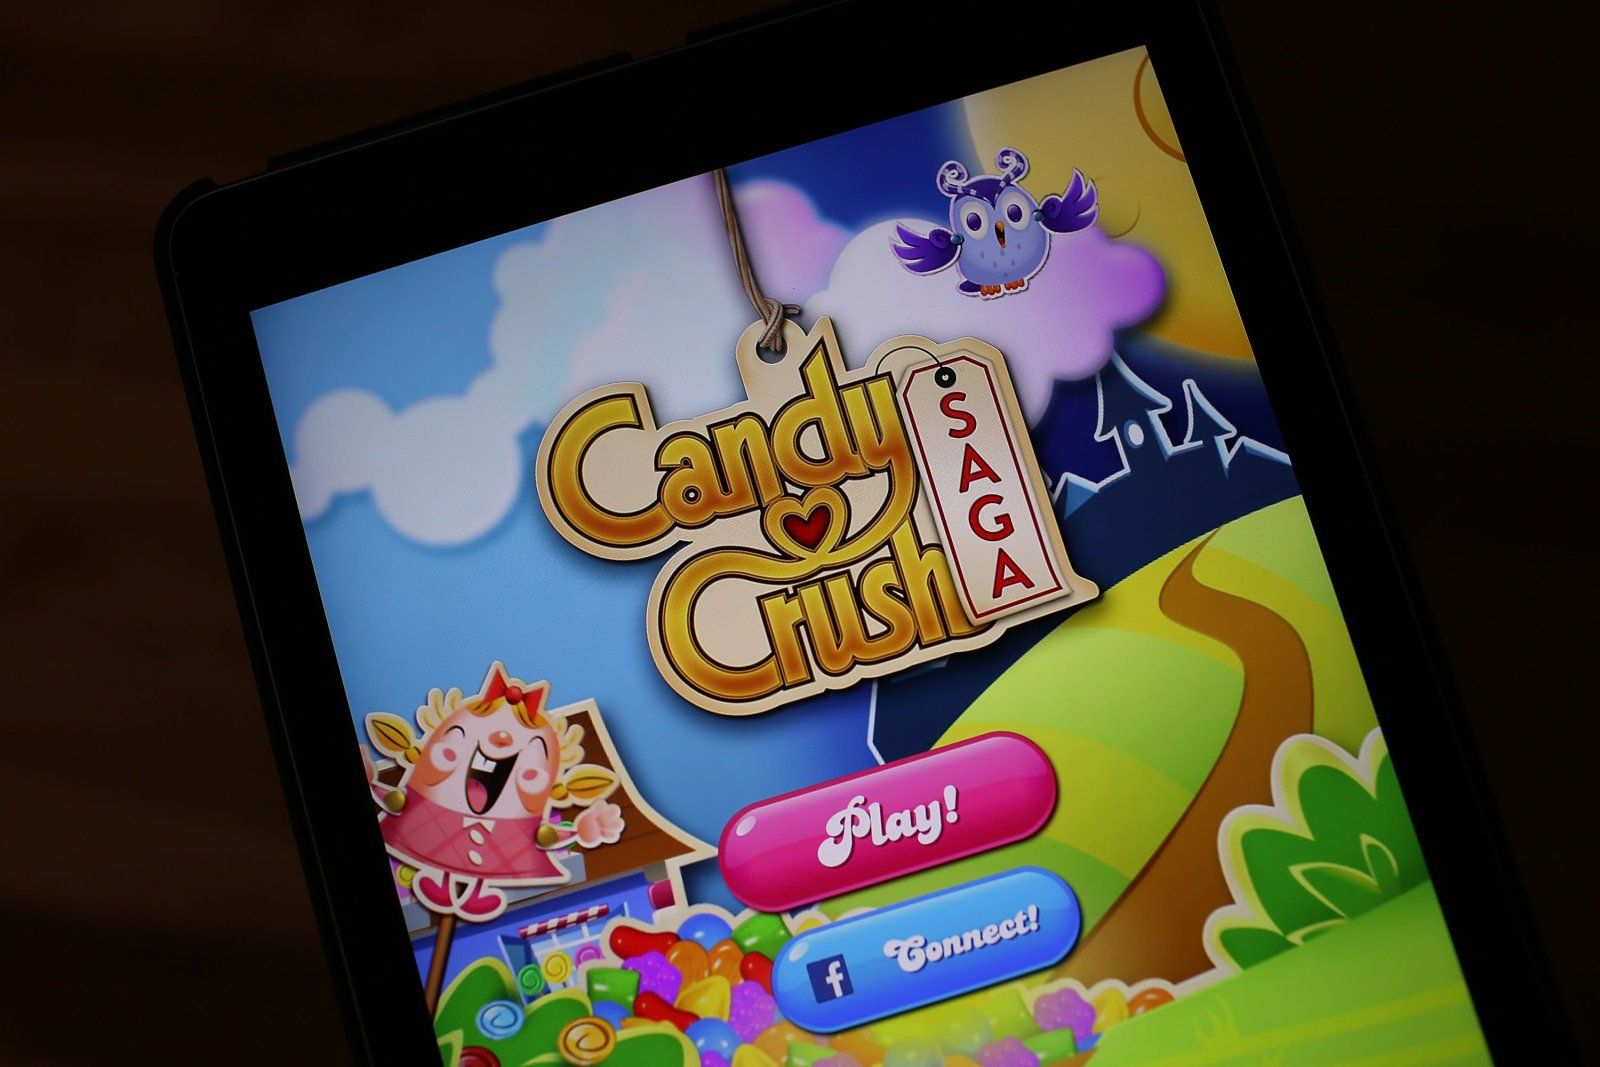 The 'Candy Crush' TV show debuts on CBS July 9th http